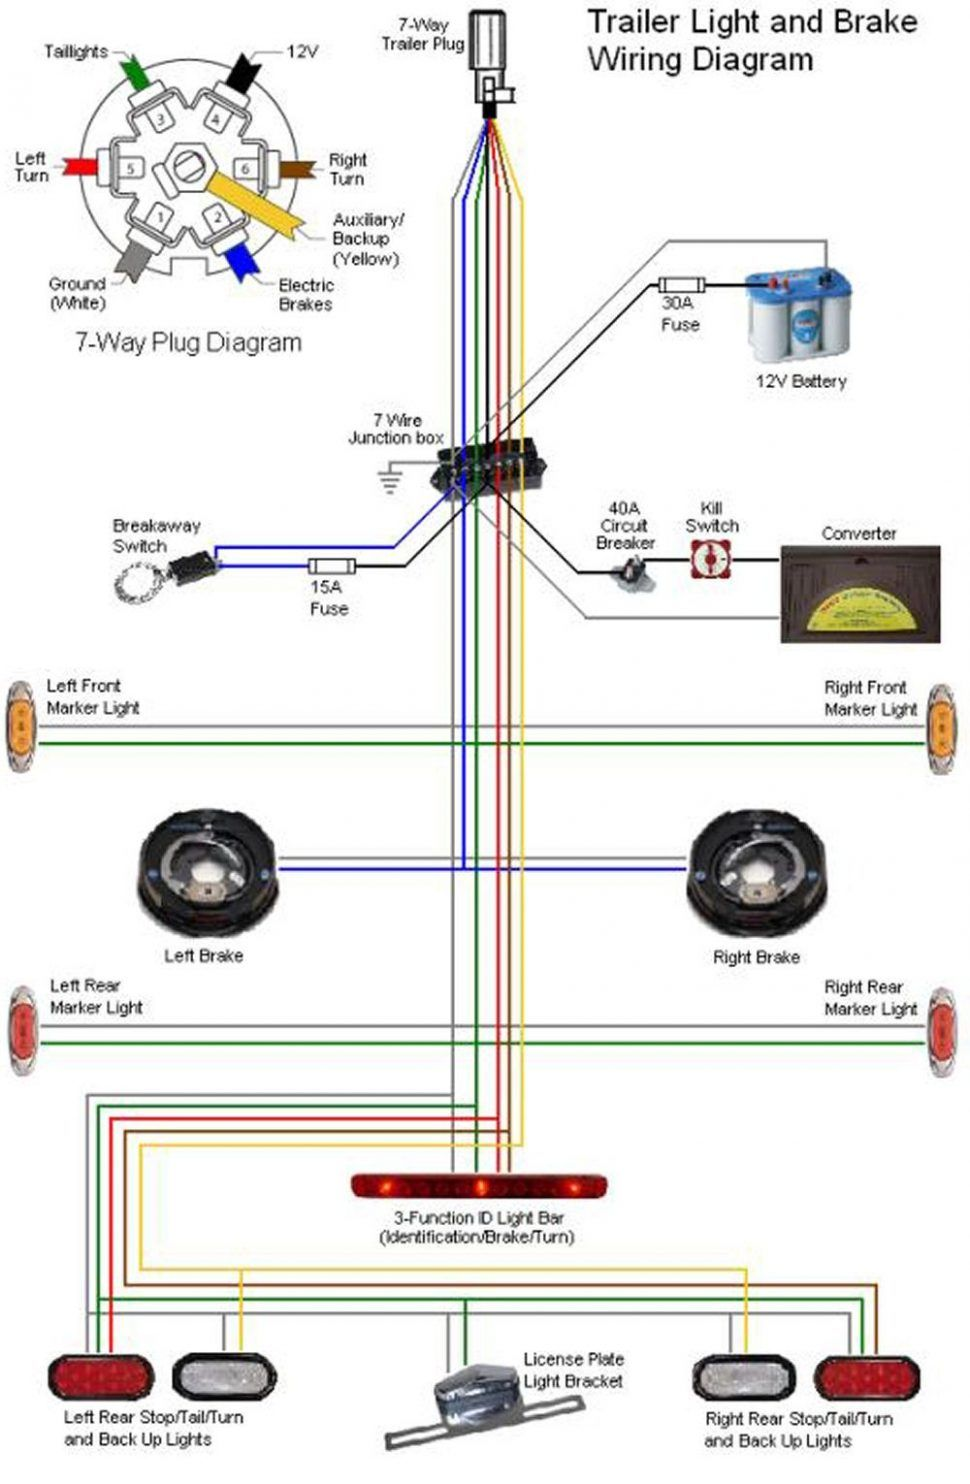 Seven Pin Trailer Wiring Diagram | Wiring Diagrams Gallery | Trailer on seven wire trailer connector, 7-wire trailer diagram, 4 wire trailer wiring harness diagram,